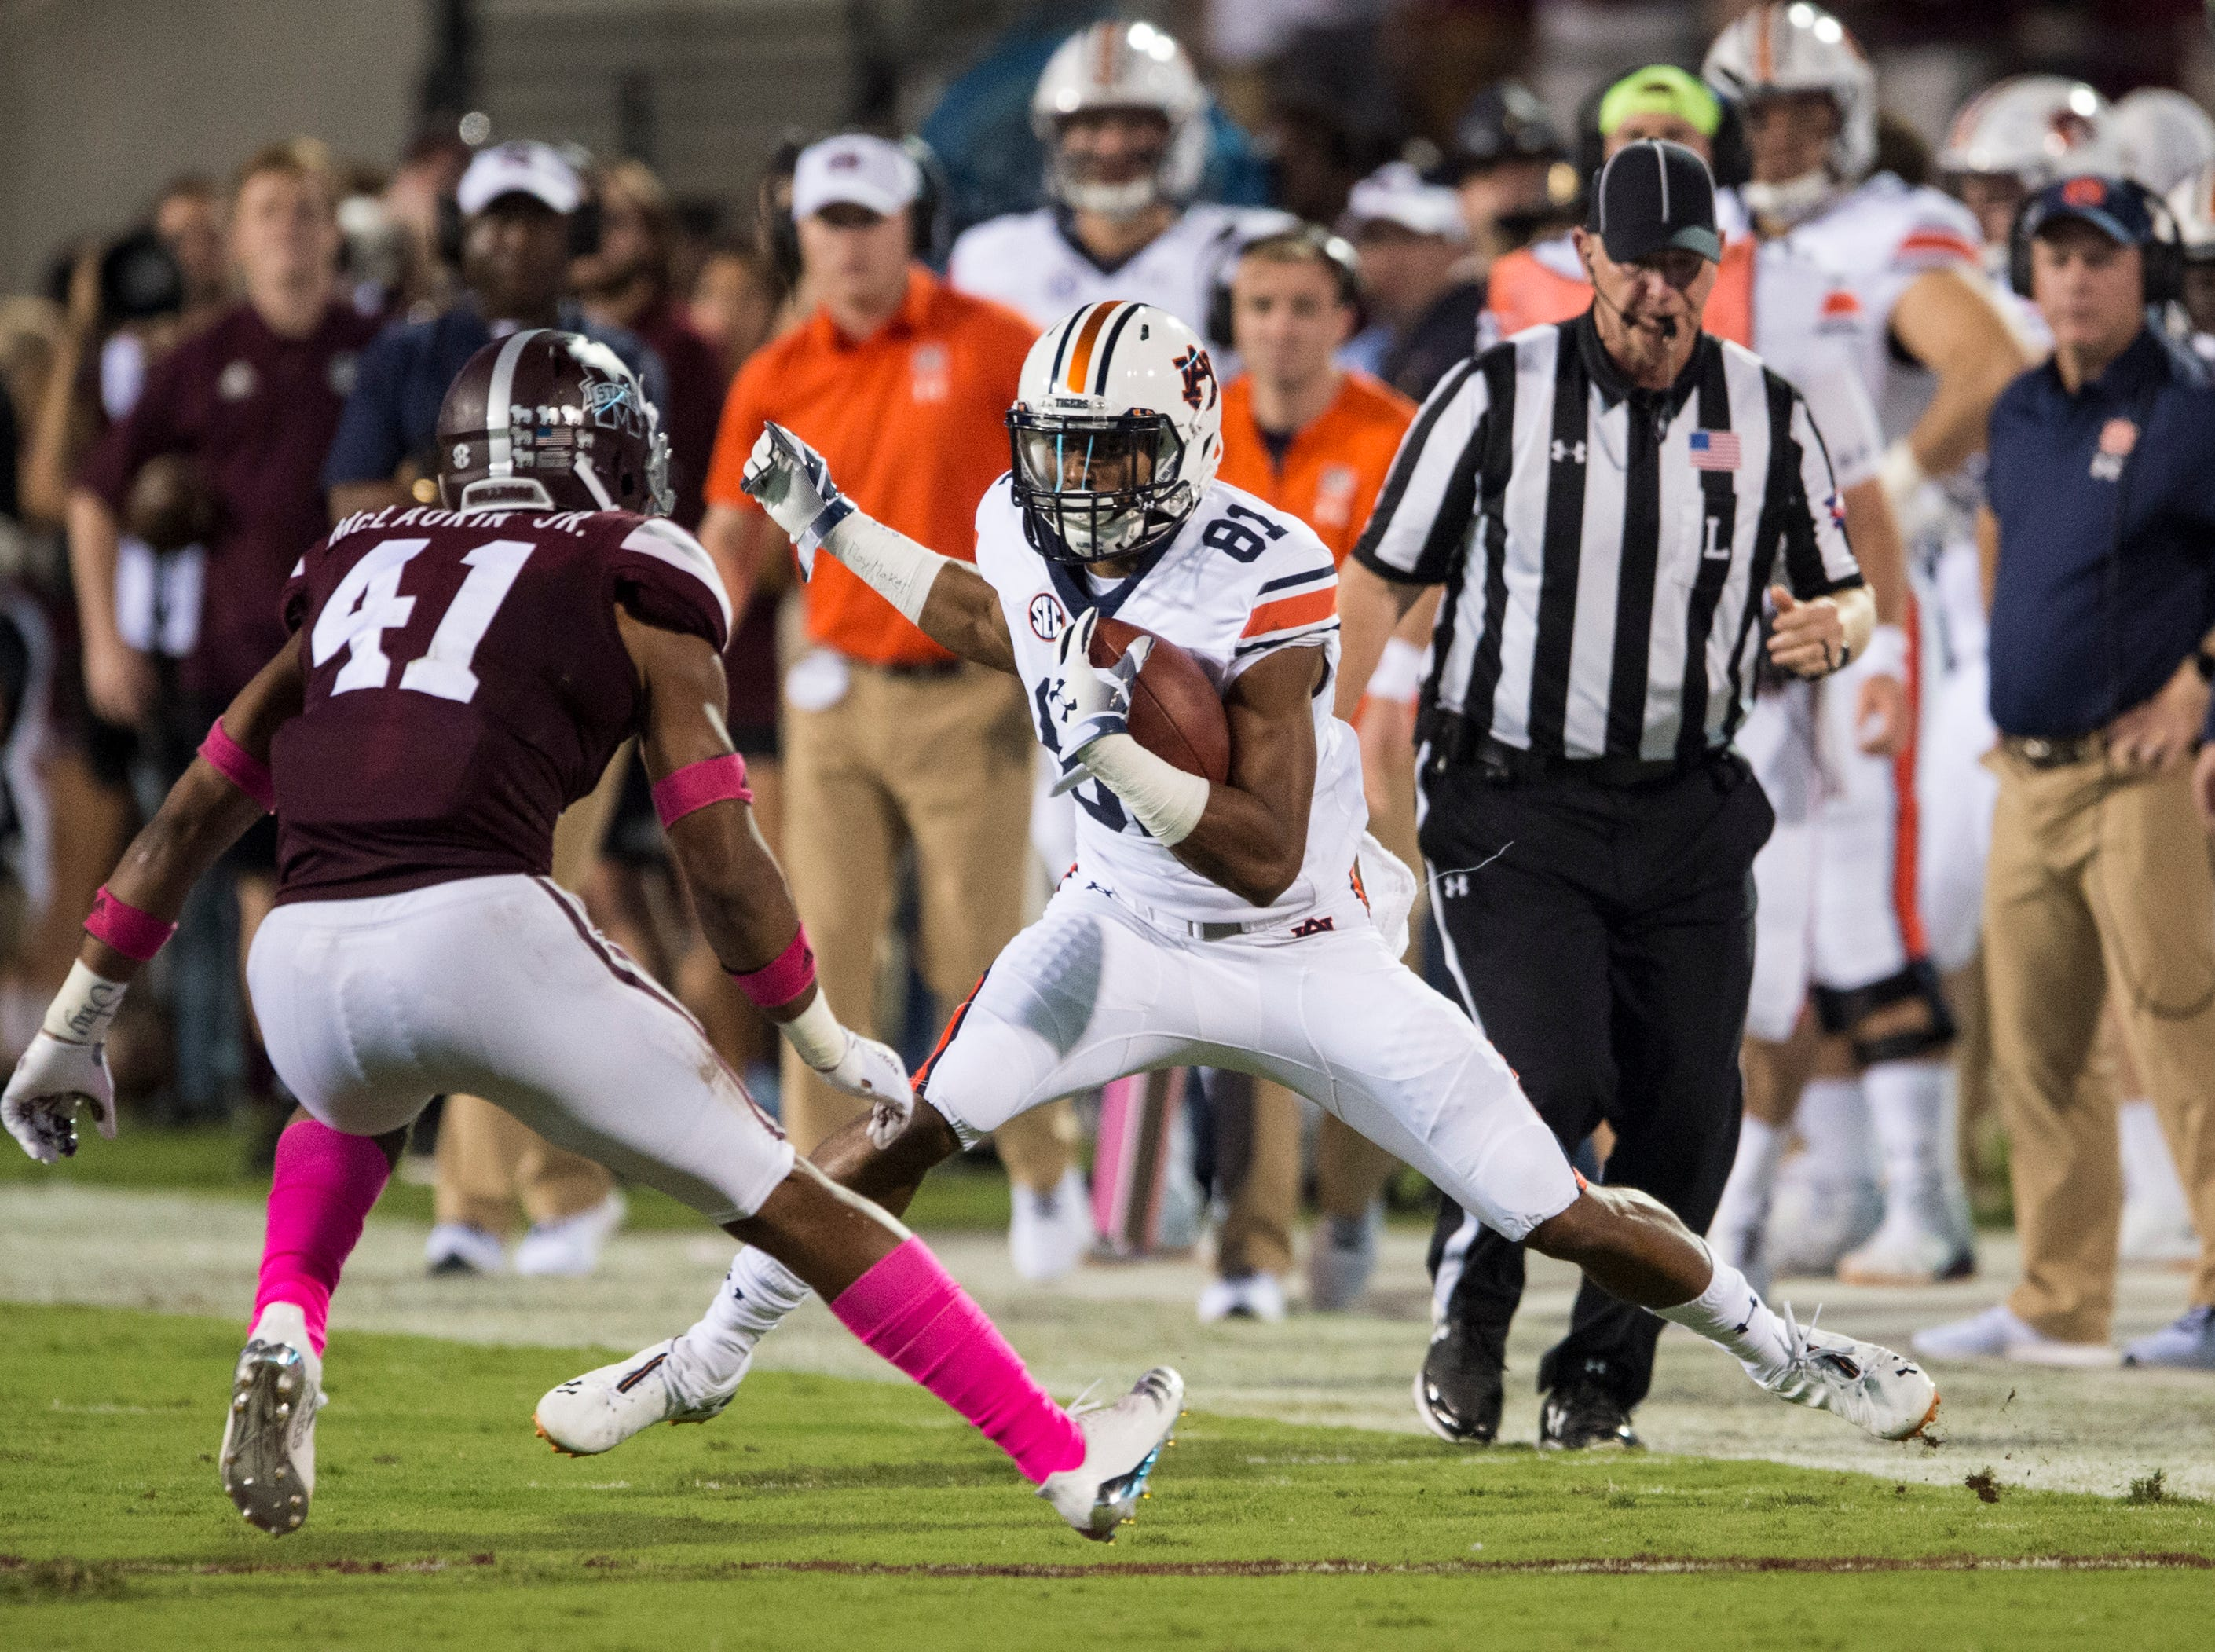 Auburn's Darius Slayton (81) steps out of bounds as he attempts to juke Mississippi State's Mark McLaurin (41) at Davis Wade Stadium in Starkville, Miss., on Saturday, Oct. 6, 2018. Mississippi State leads Auburn 13-3 at halftime.